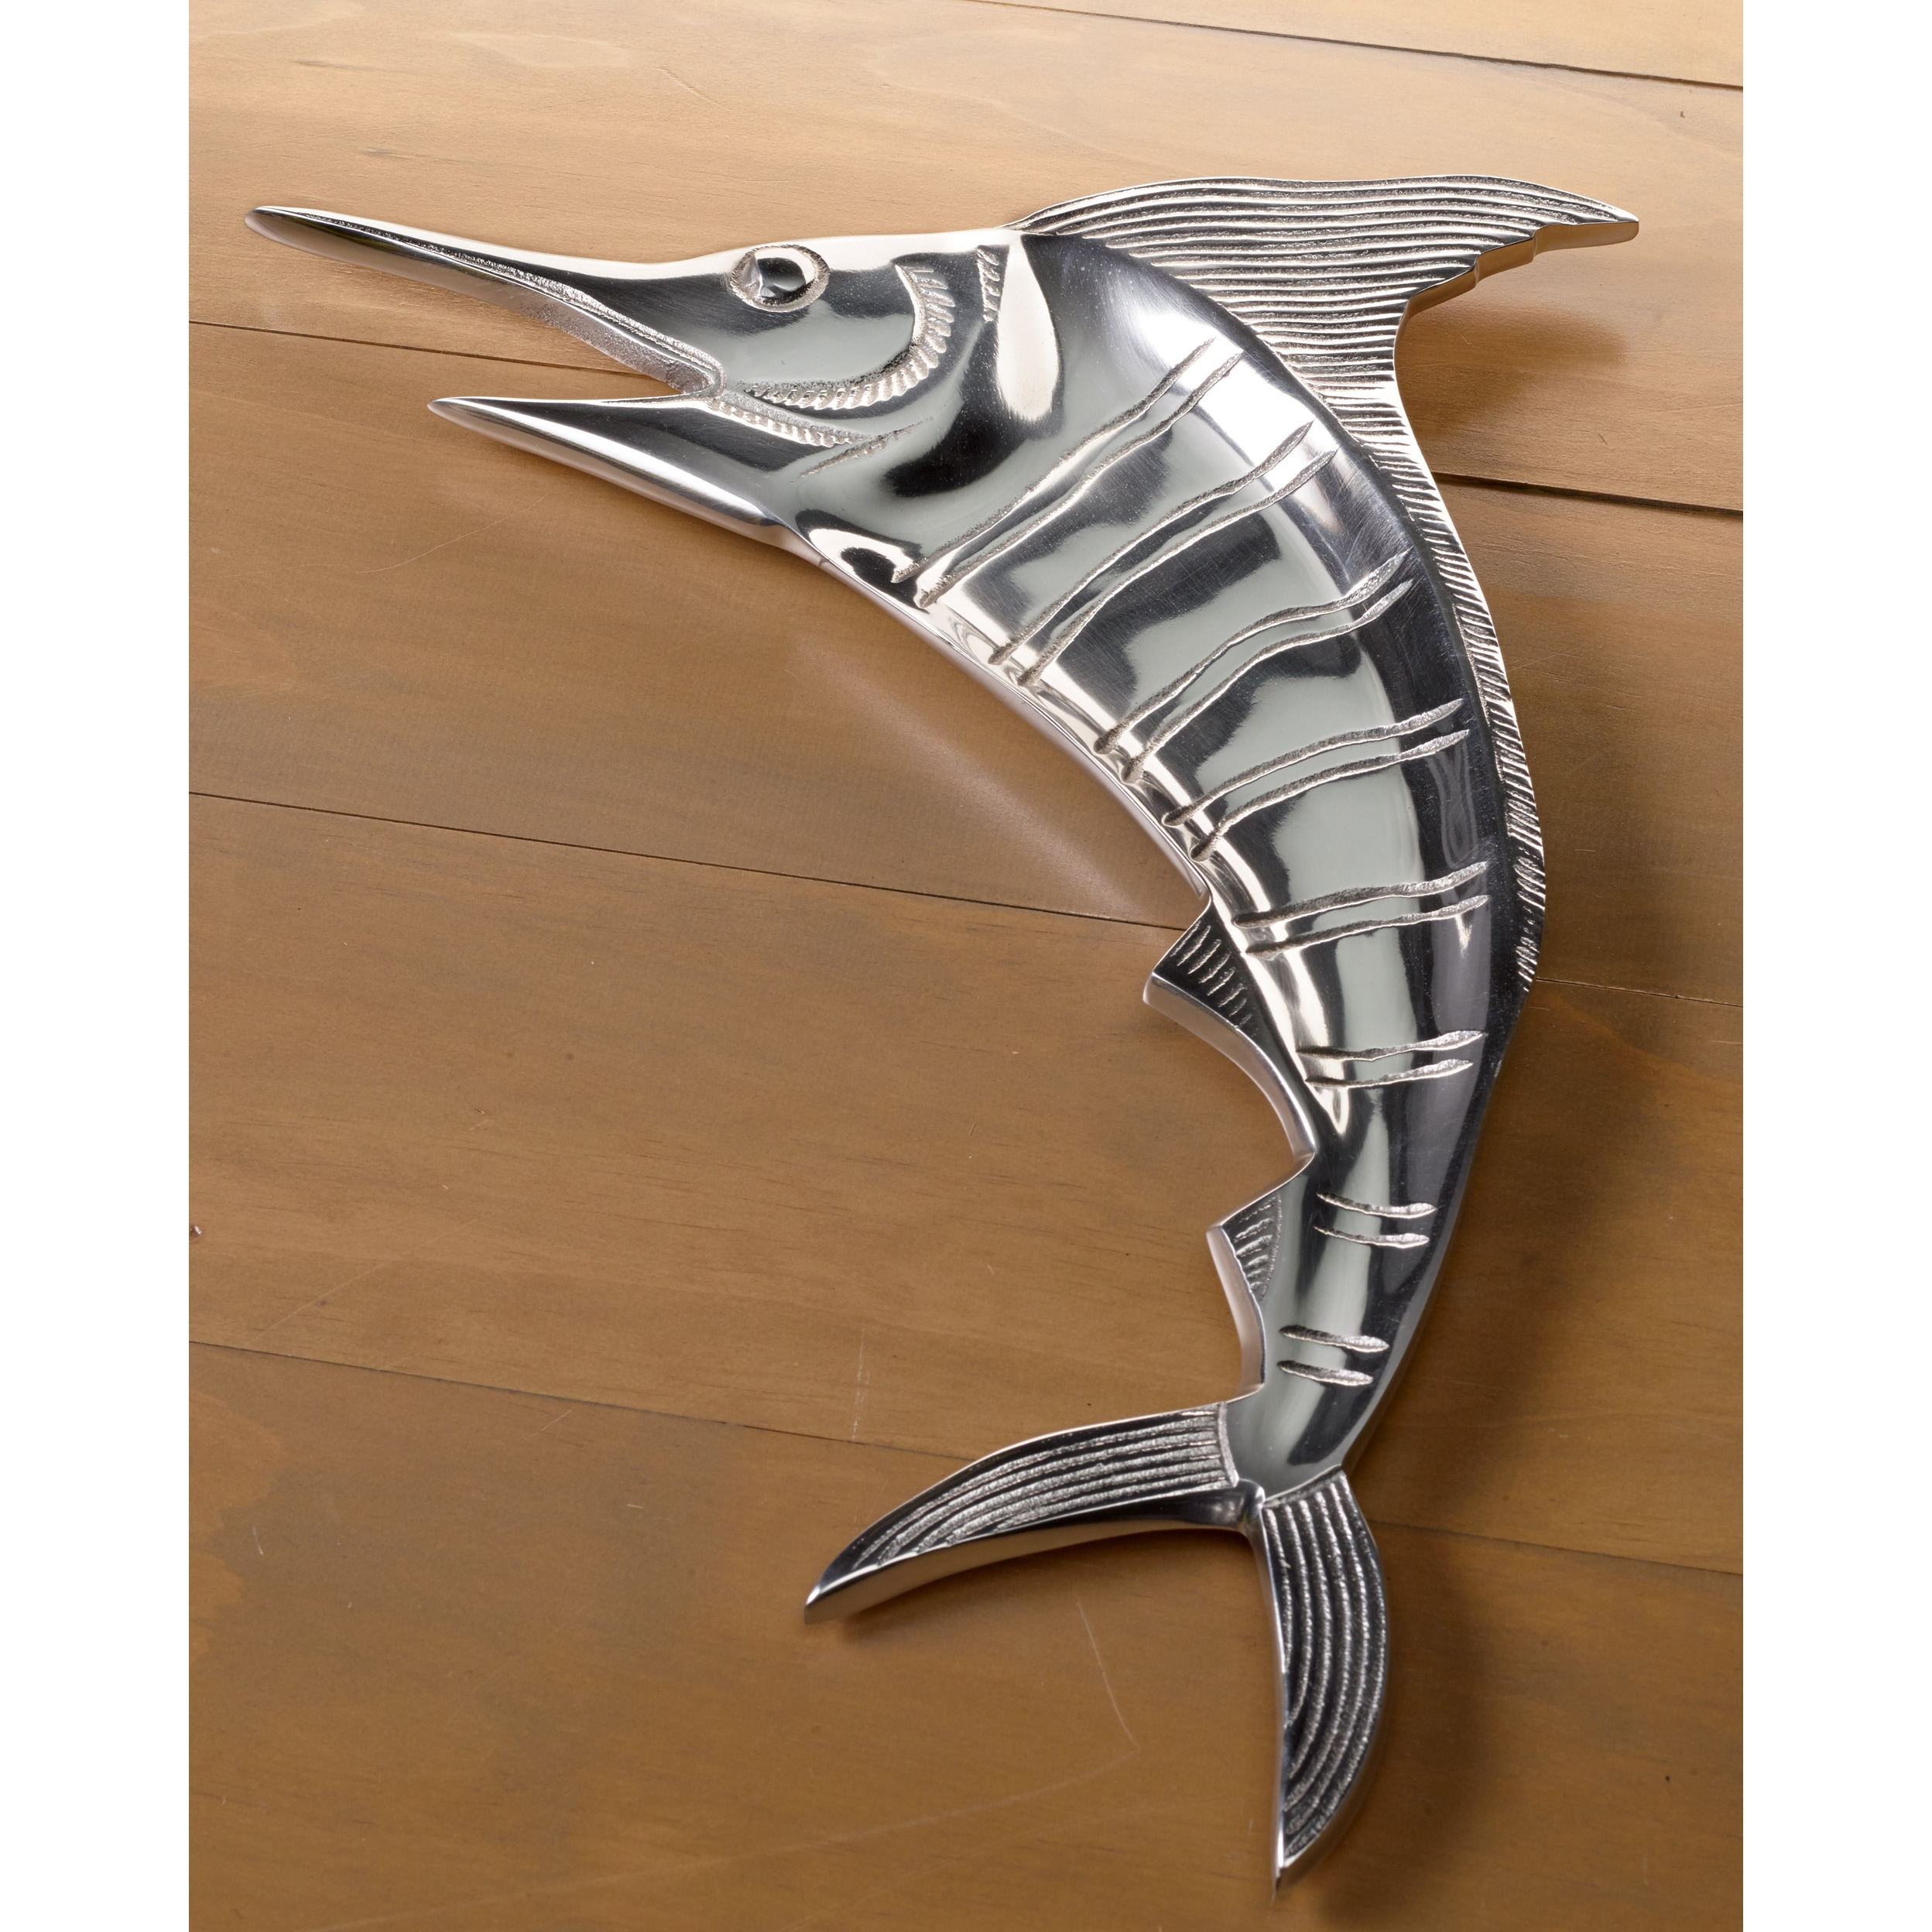 Large casted aluminum marlin 20 inch platter free shipping on large casted aluminum marlin 20 inch platter free shipping on orders over 45 overstock 16428471 dailygadgetfo Choice Image